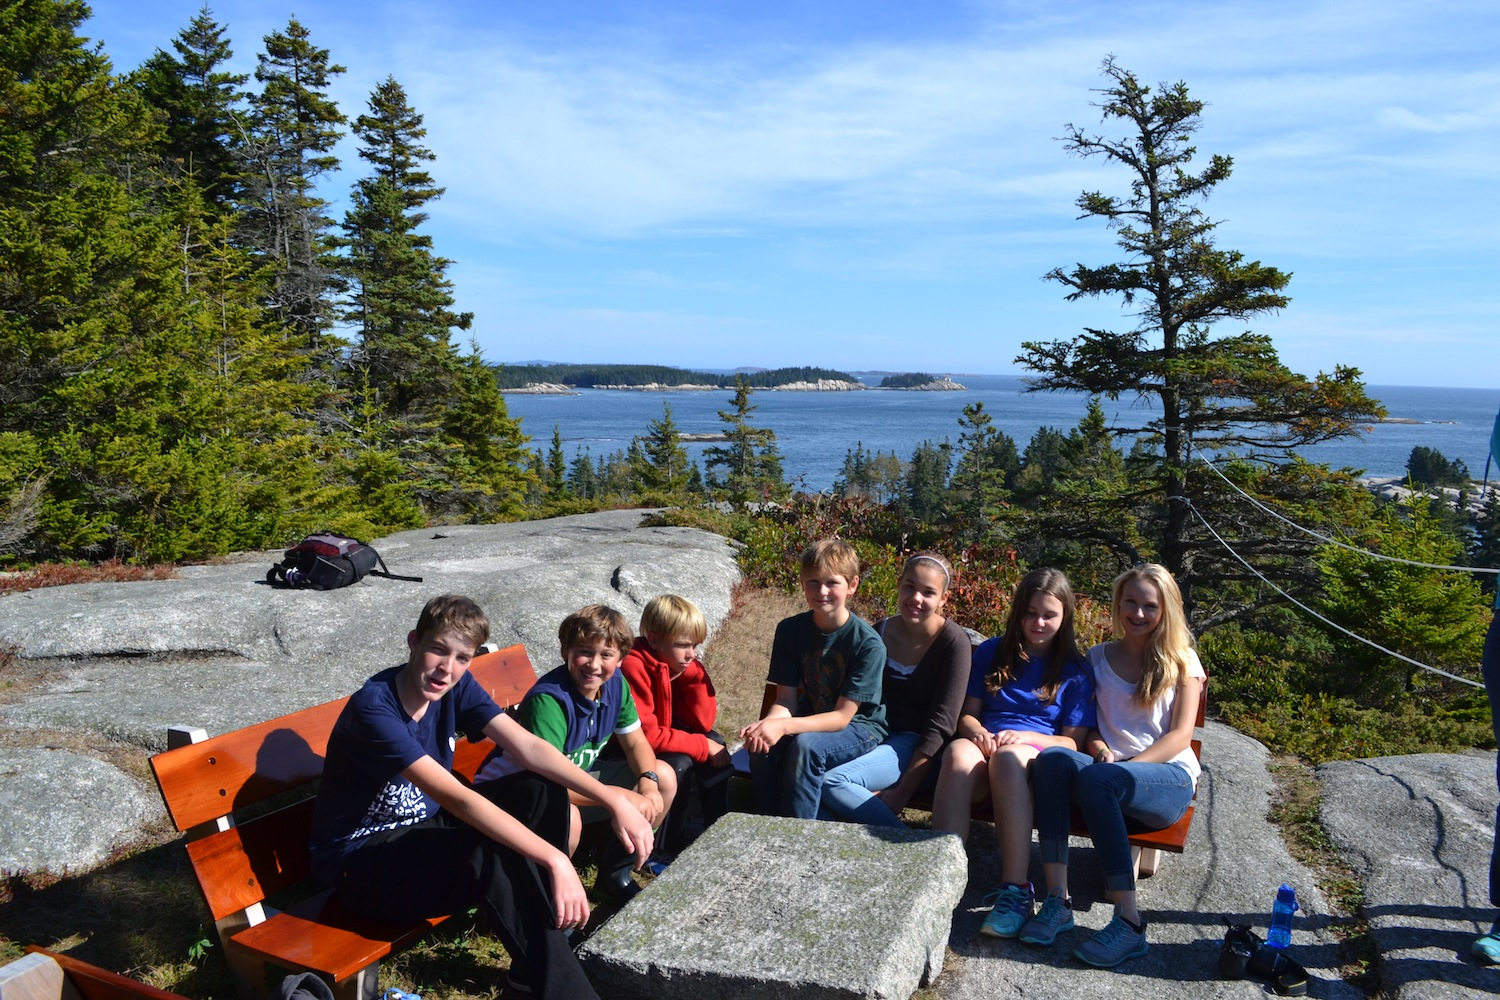 Students enjoy a clear, sunny view at the high cliffs on Hurricane